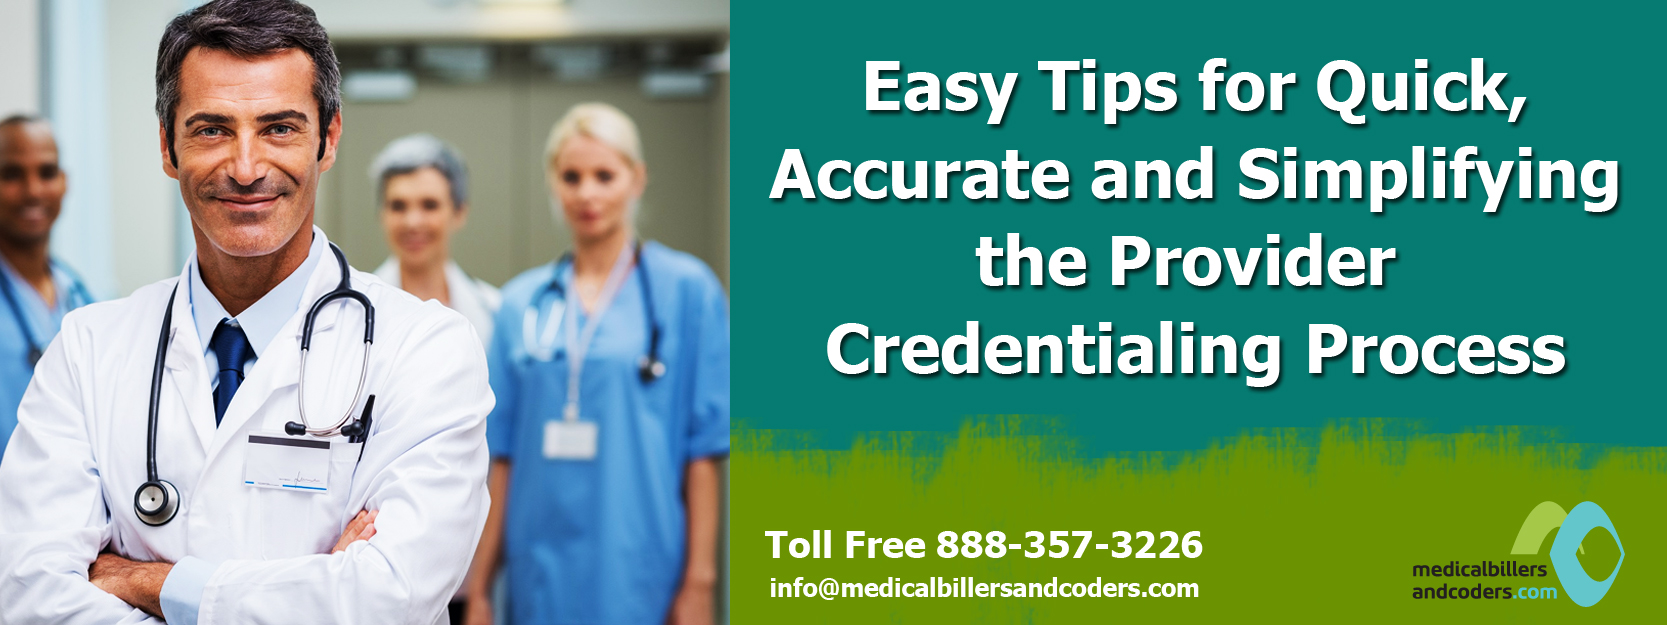 Easy Tips for Quick, Accurate and Simplifying the Provider Credentialing Process